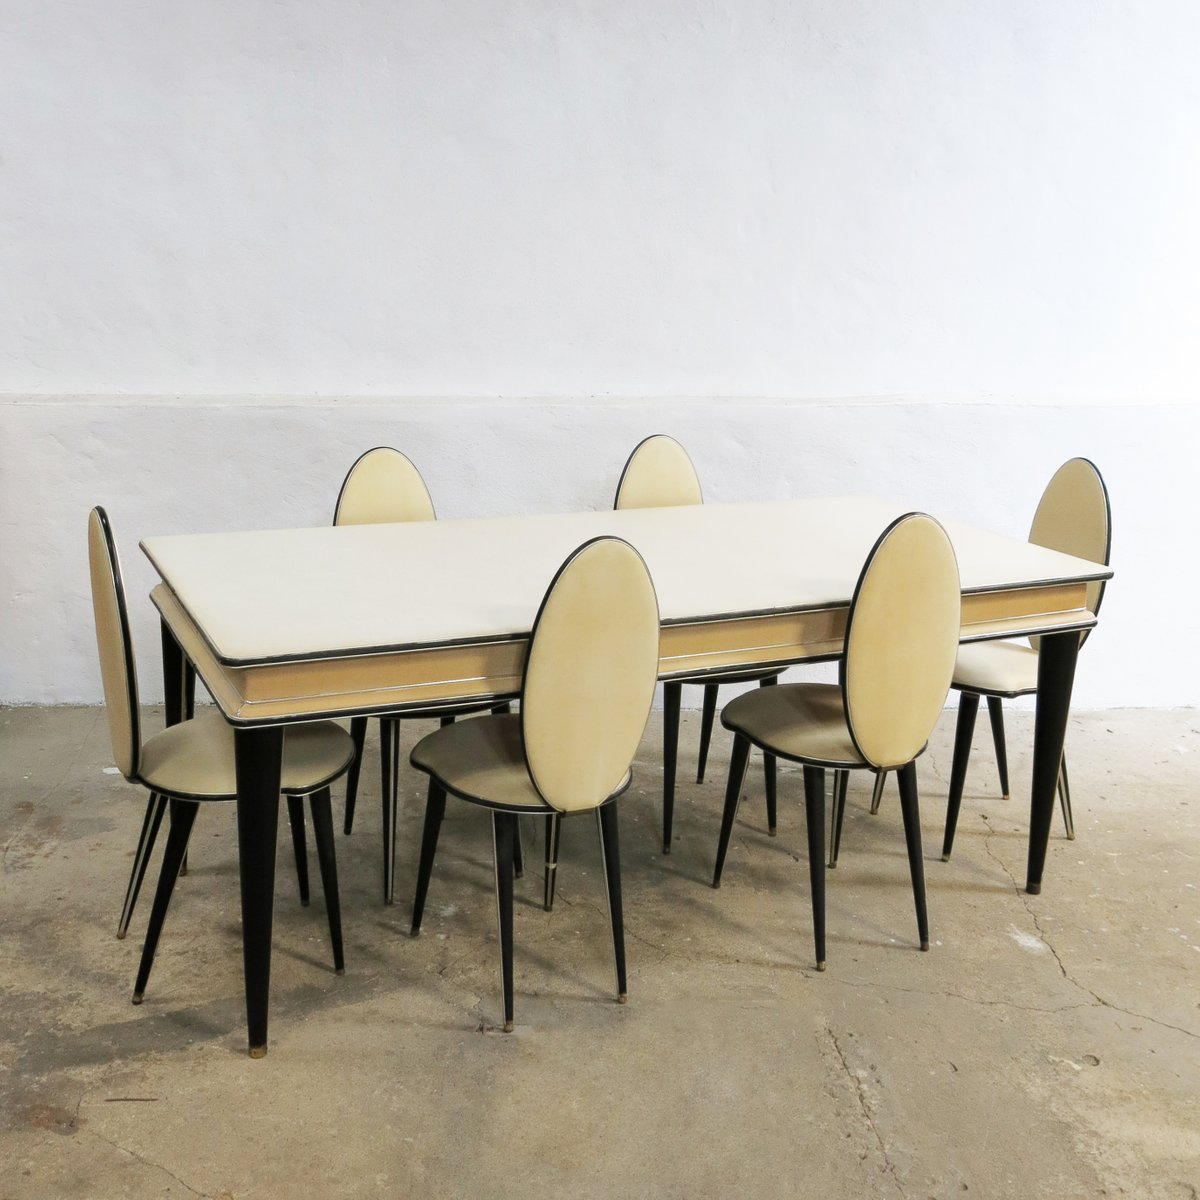 Mid Century Dining Set By Umberto Mascagni For Harrods 1950s Of 7 Sale At Pamono